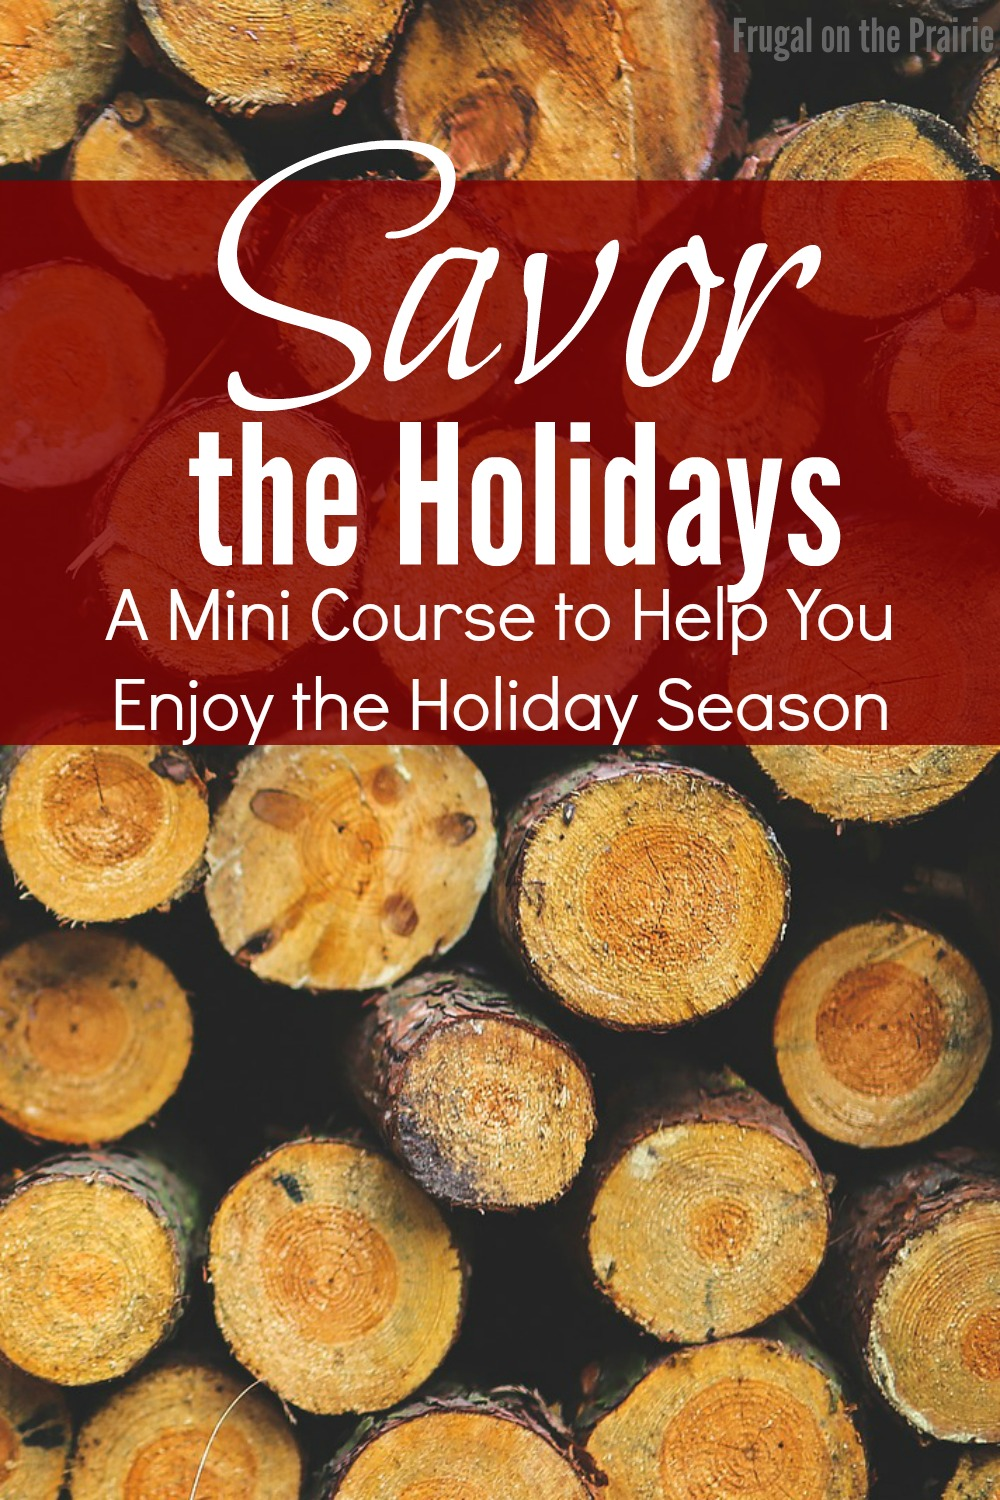 Are you tired of feeling overwhelmed in the weeks between Thanksgiving and Christmas? Learn how to savor the holidays in this easy mini course!